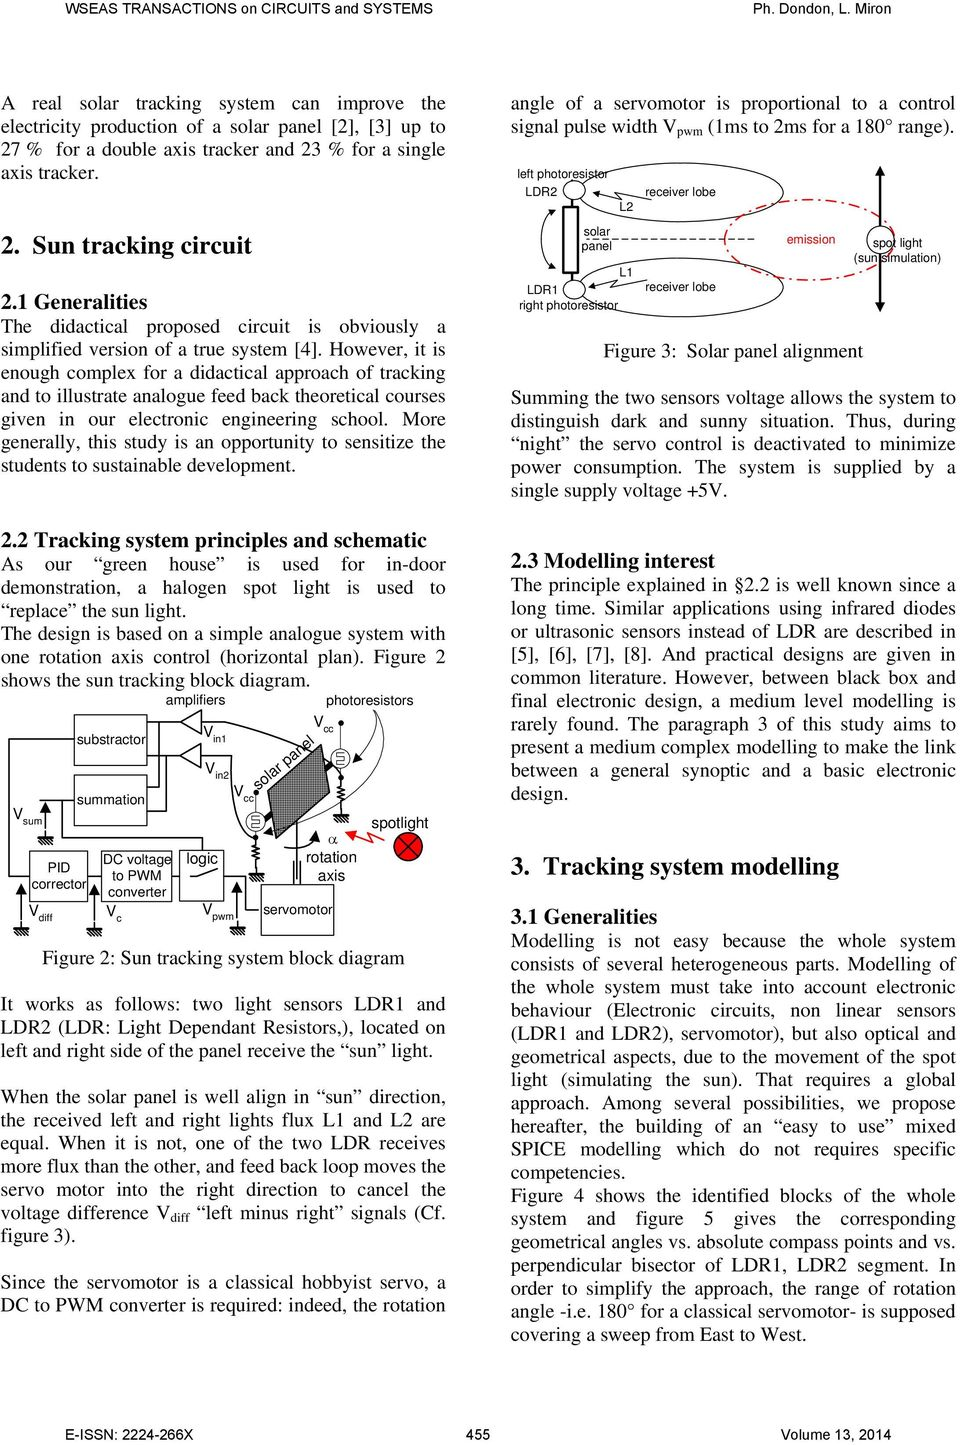 Modelling And Design Of A Small Scale Solar Tracking System Tracker Circuit However It Is Enough Complex For Didactical Approach To Illustrate Analogue